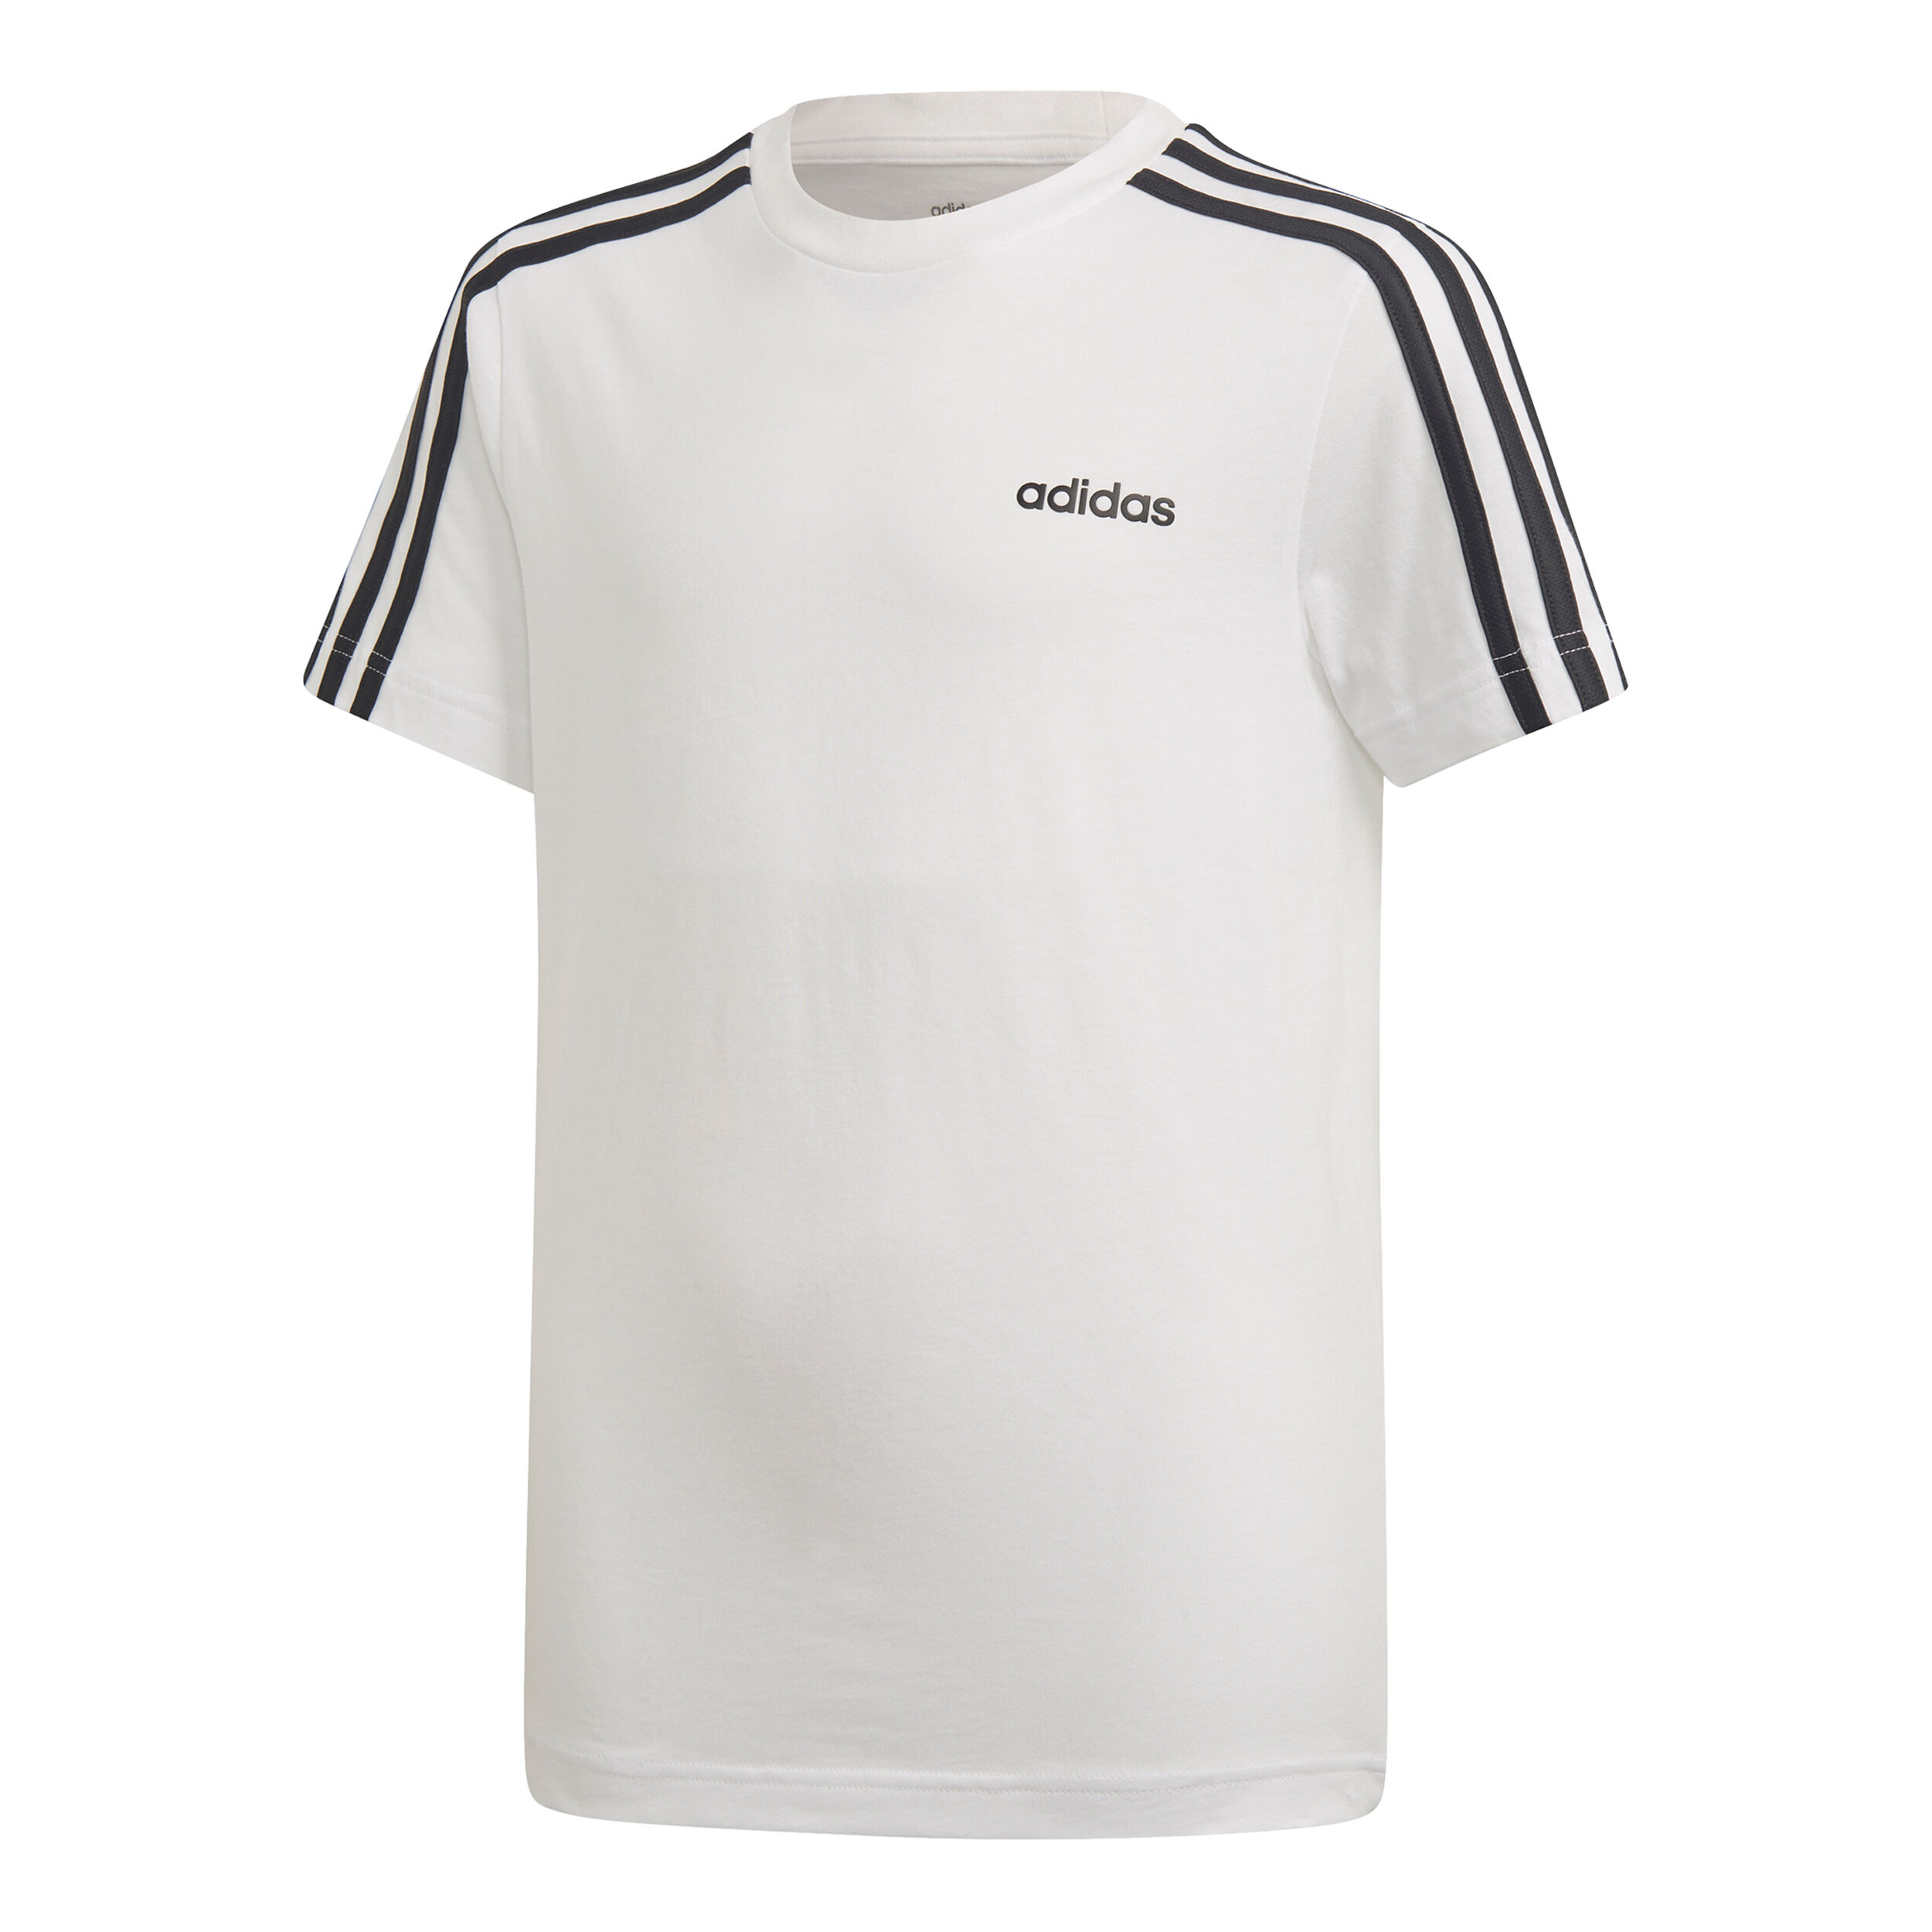 adidas Essentials 3 Stripes T shirt Jongens Wit, Zwart